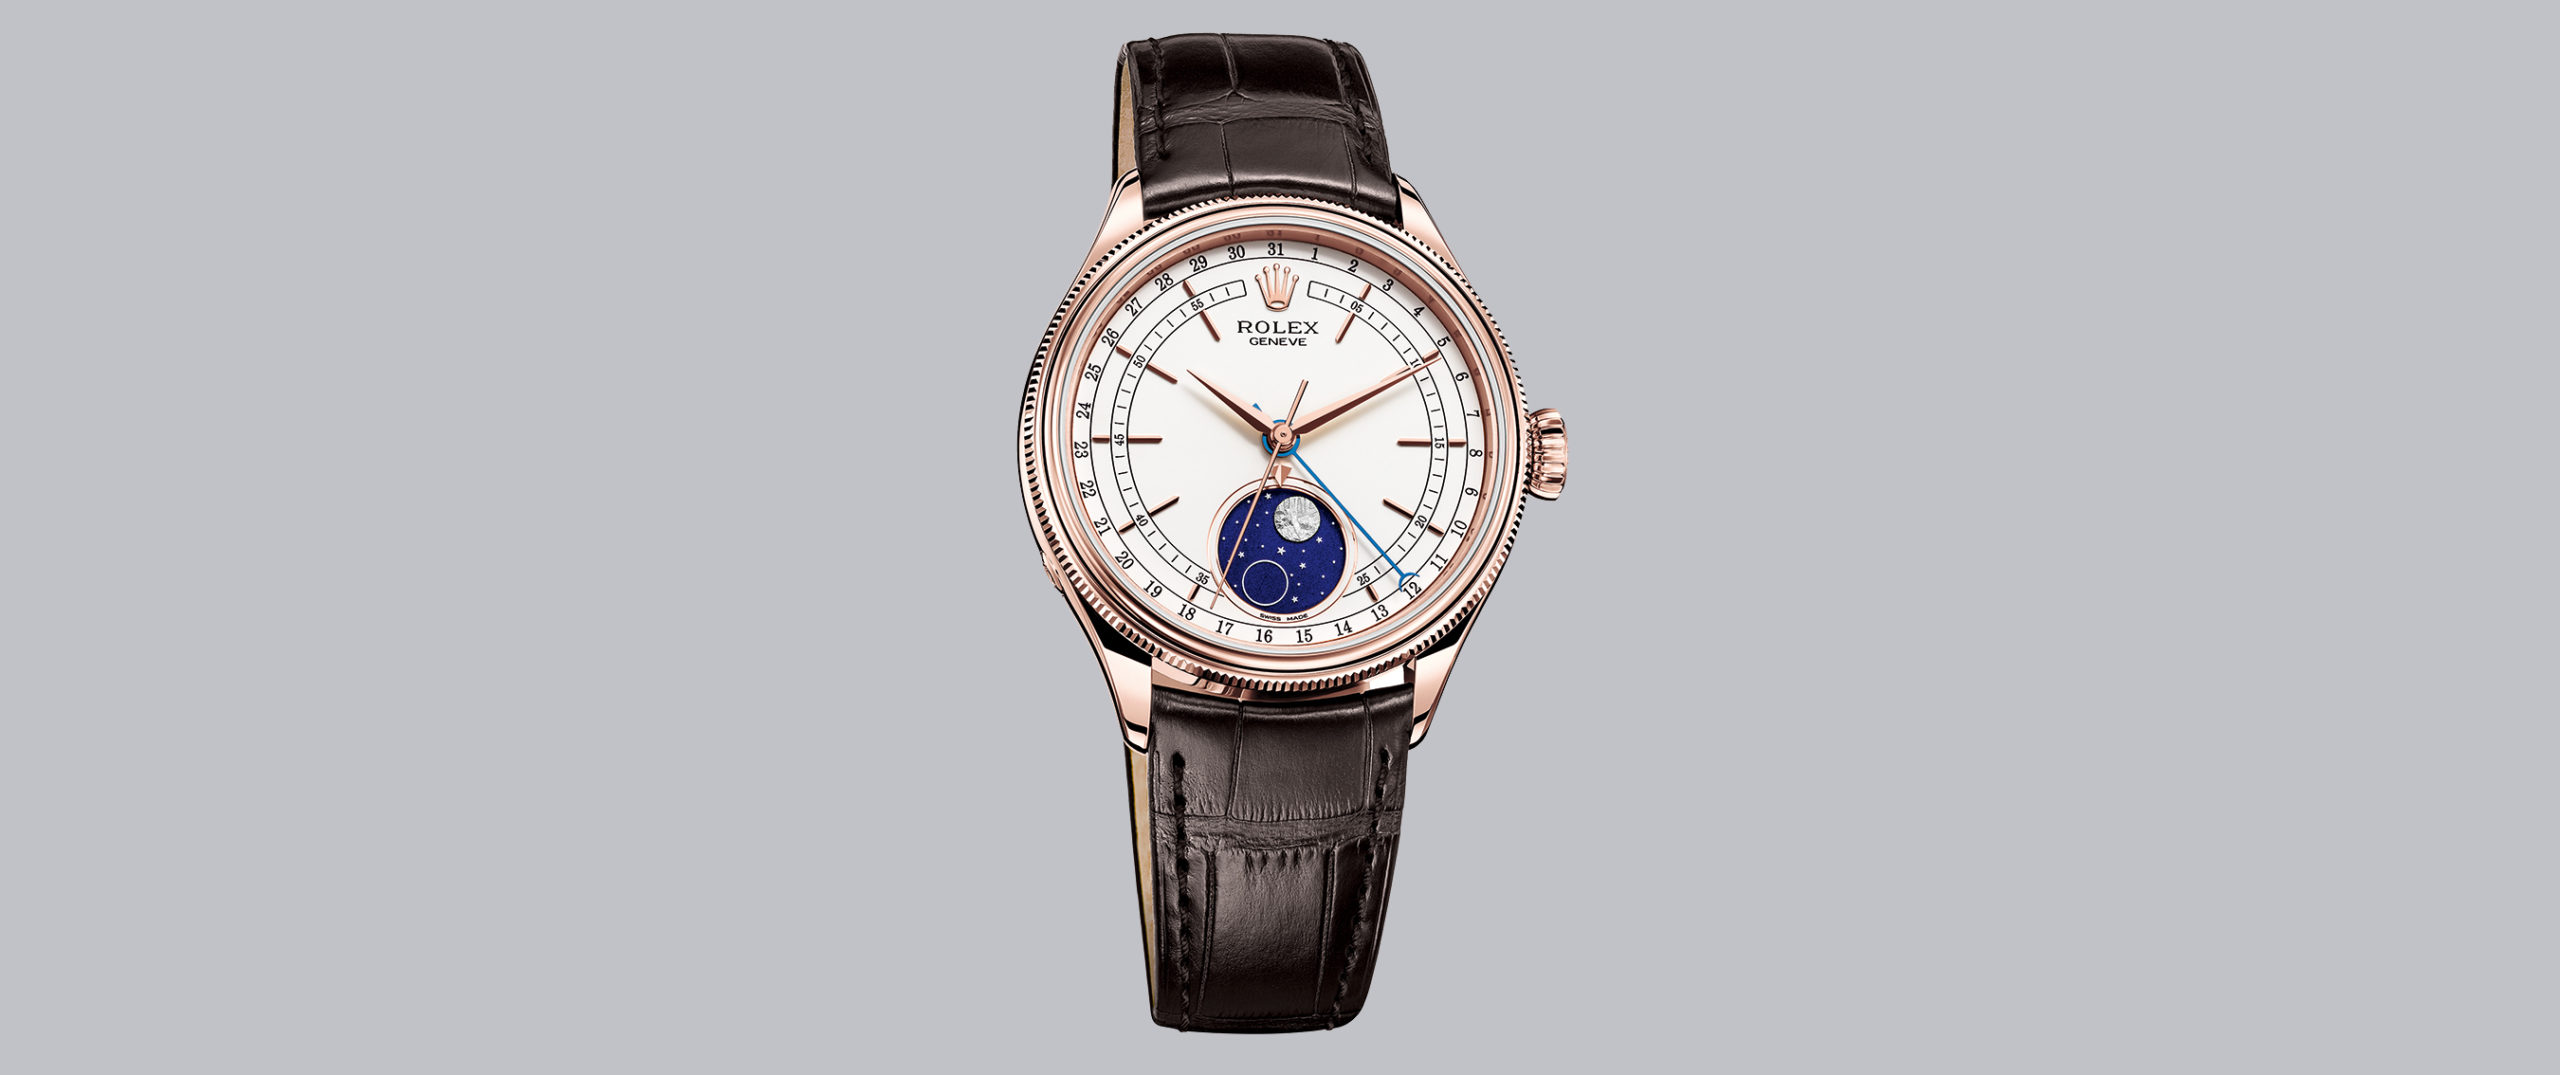 Watch of the Week: Rolex Cellini Moon Phase | The Gentleman's Journal